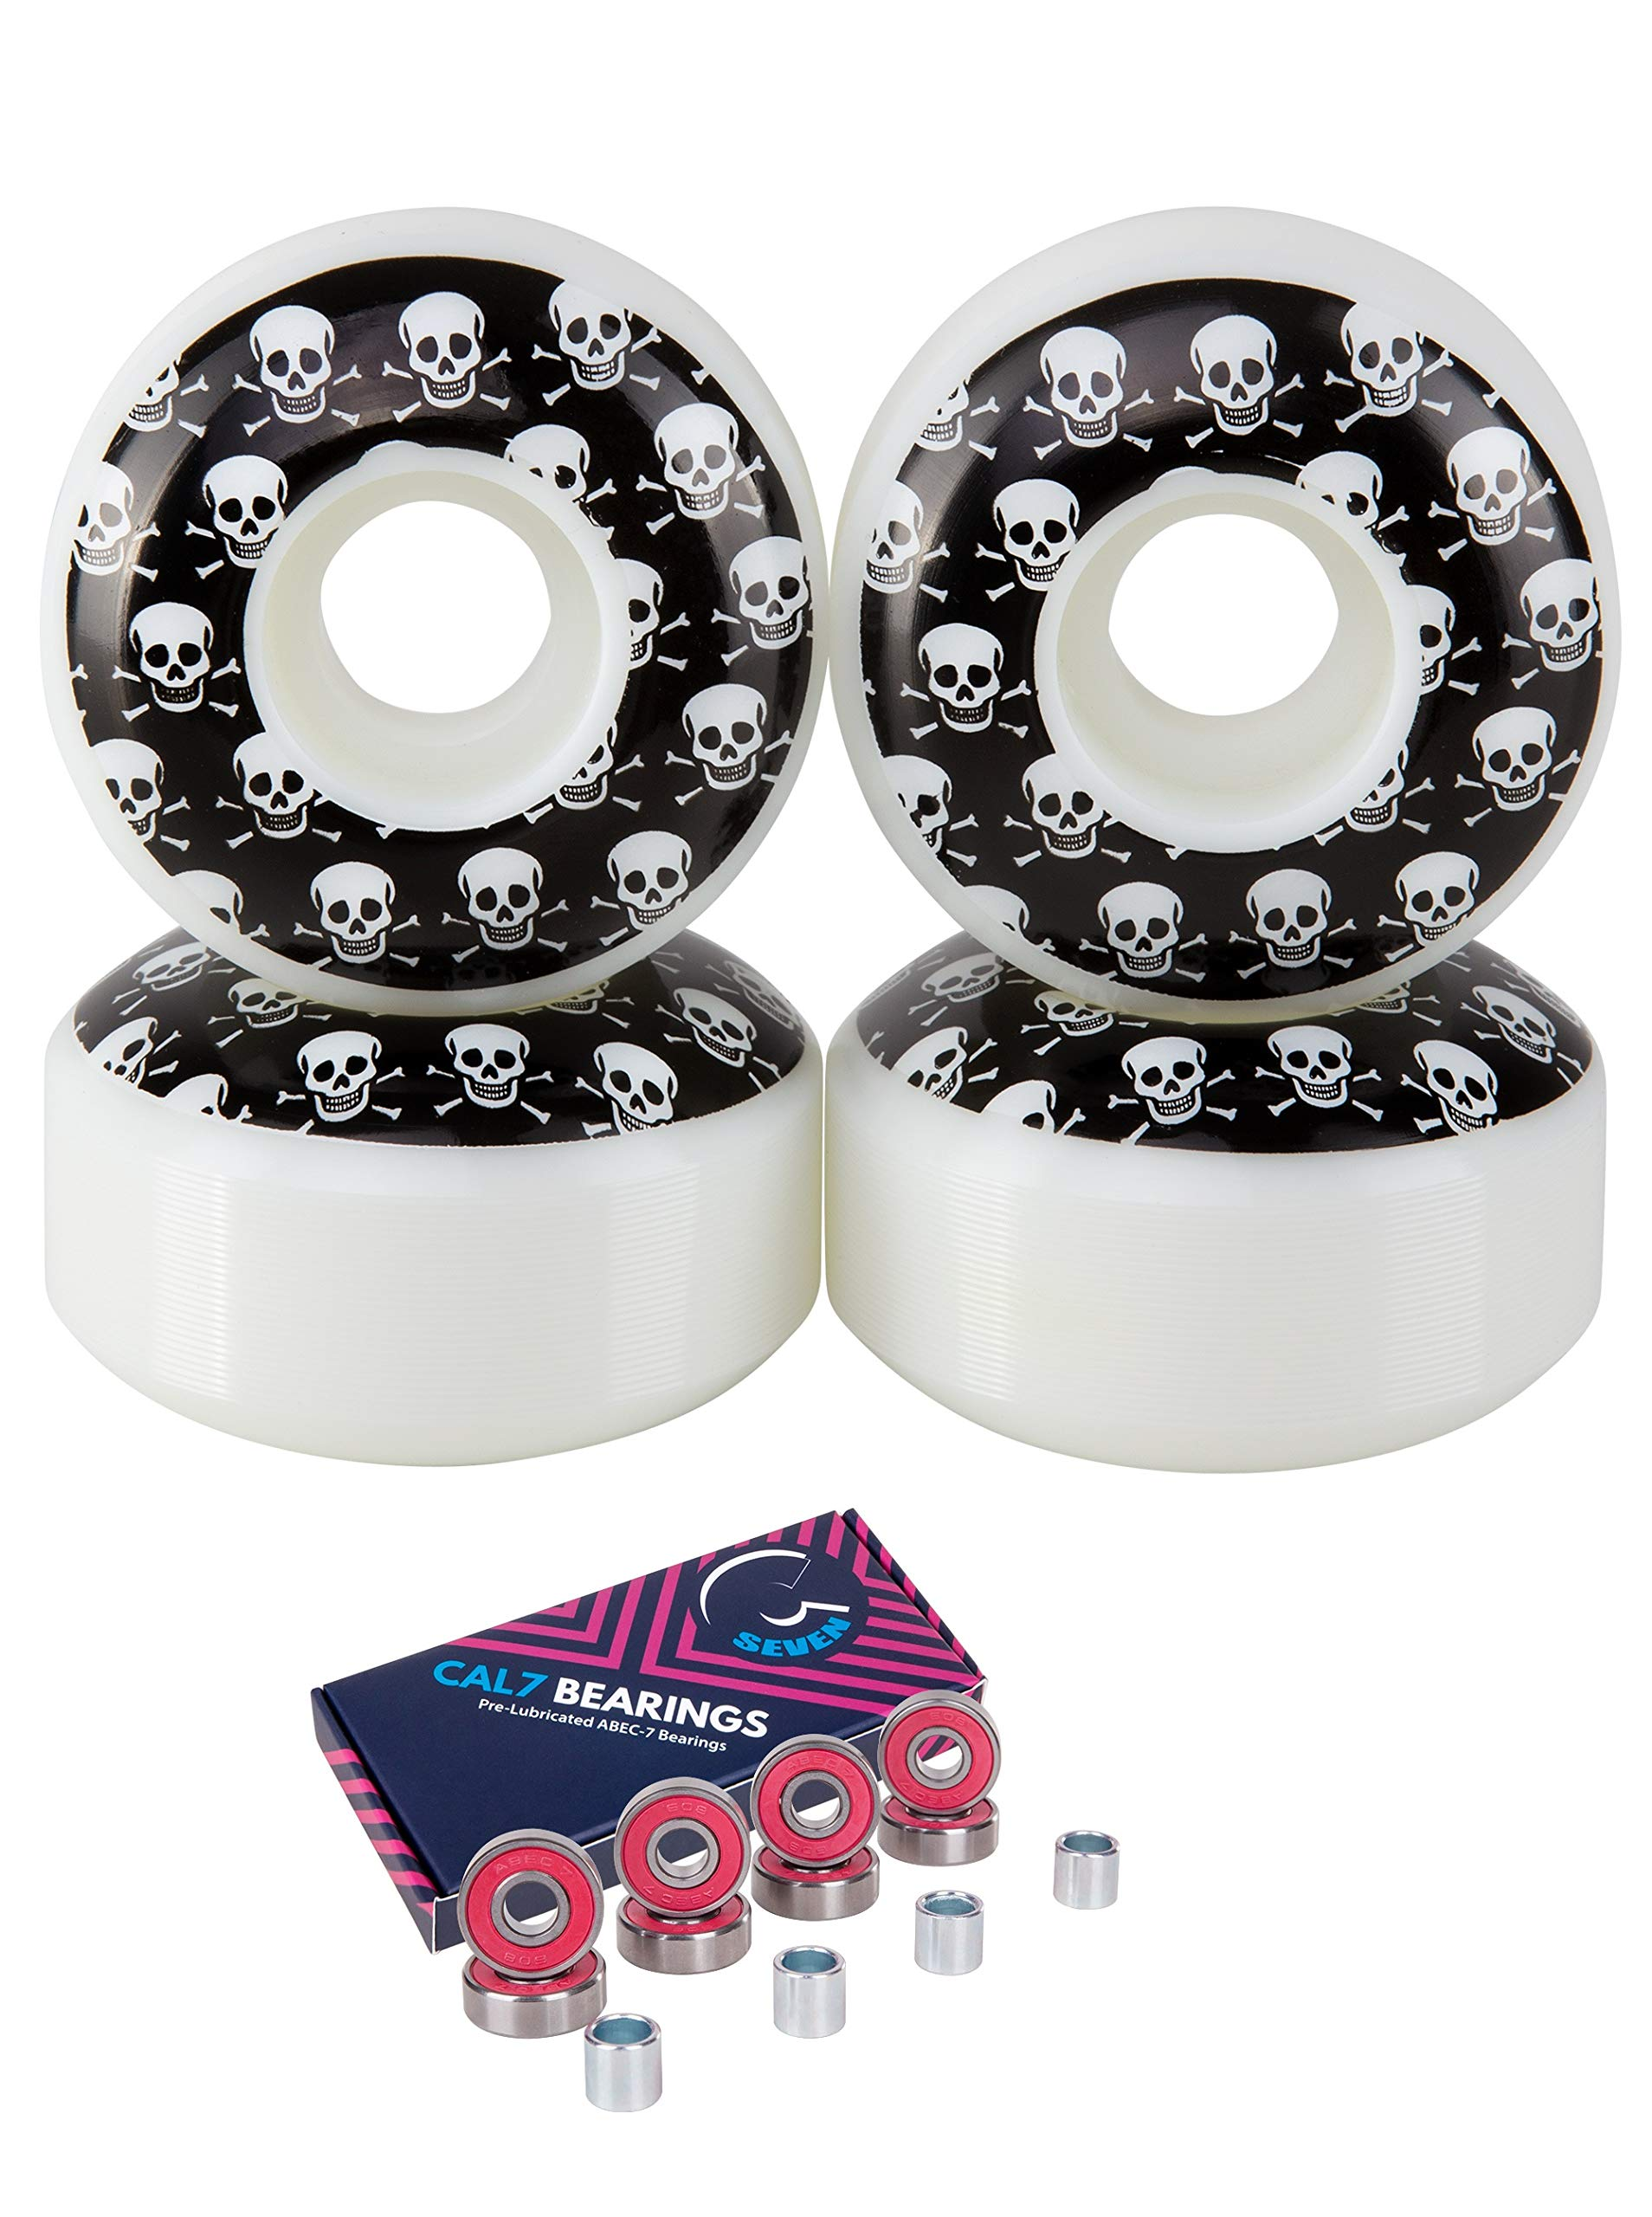 Cal 7 Skateboard Wheels and Bearings | 52mm 100A Wheel Set Combo (Crossbone) by Cal 7